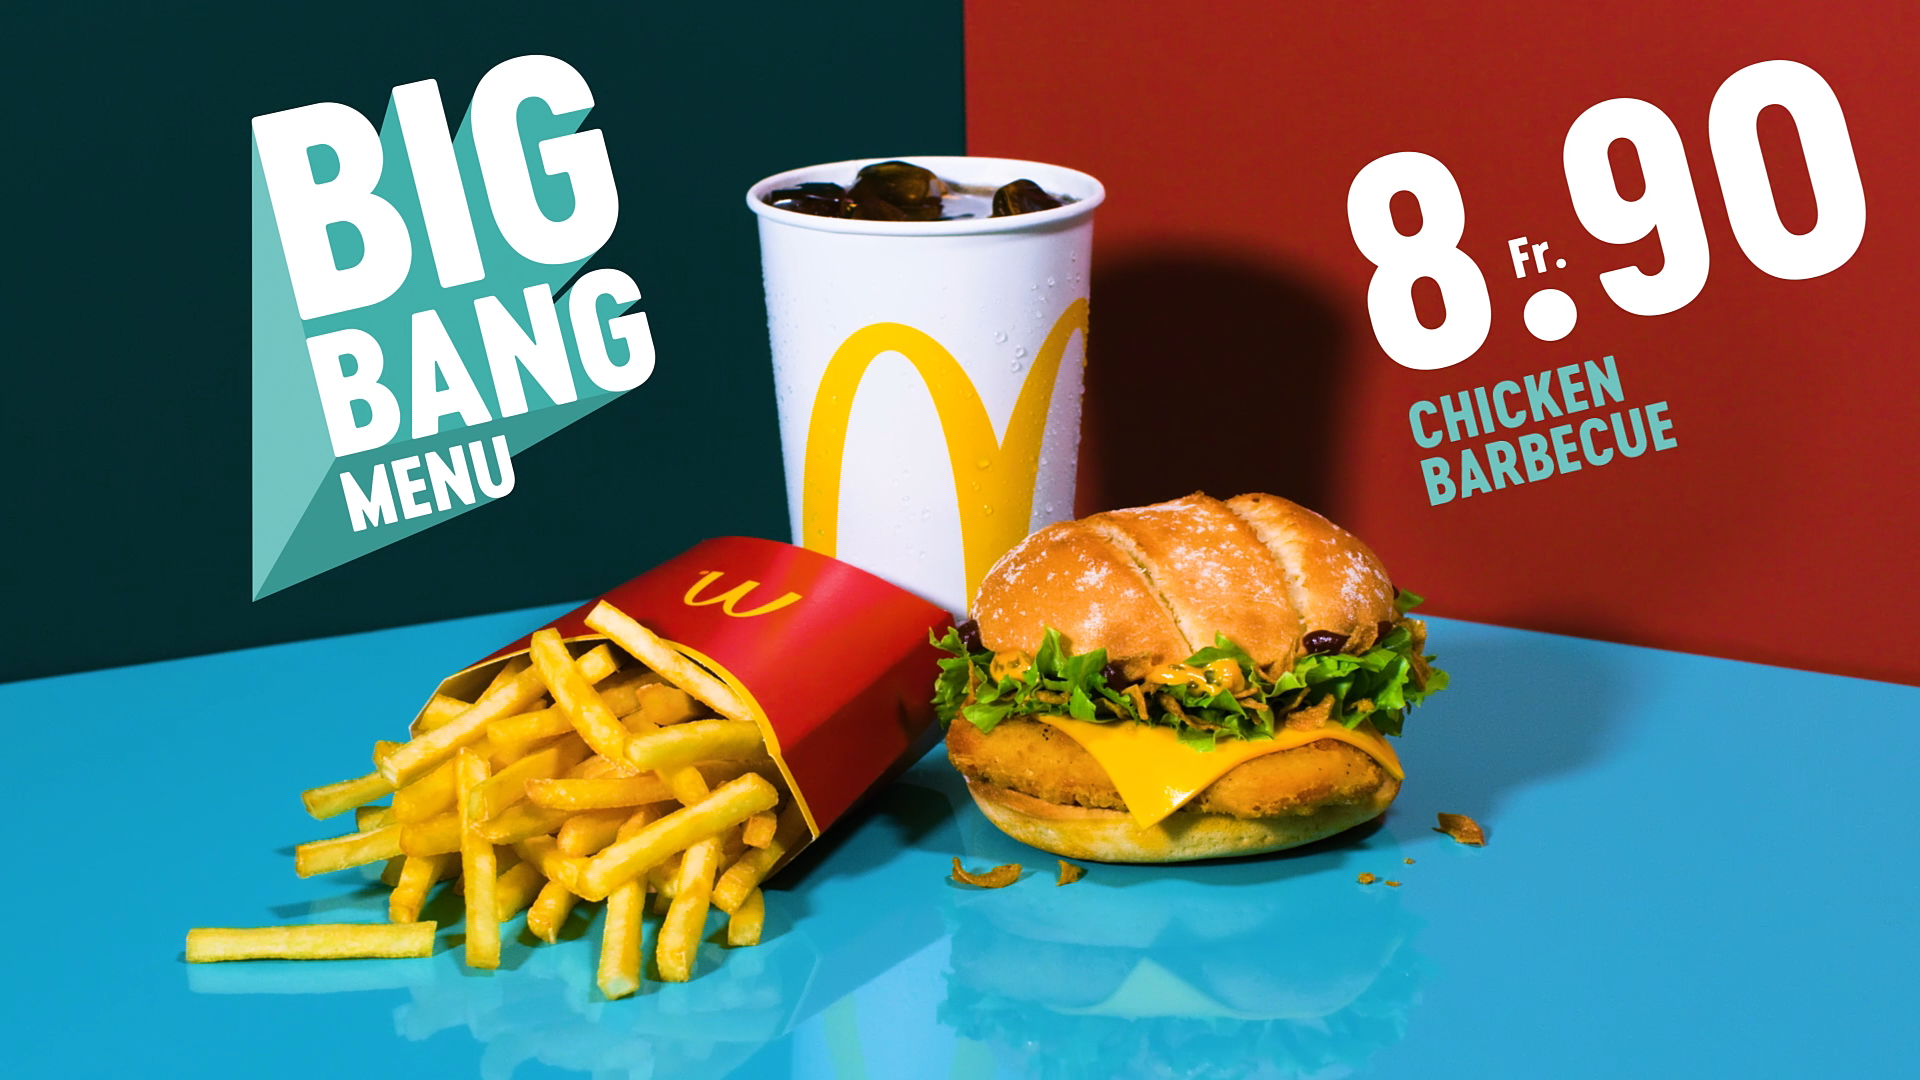 Westpoint Films McDonald's Big Bang Menu